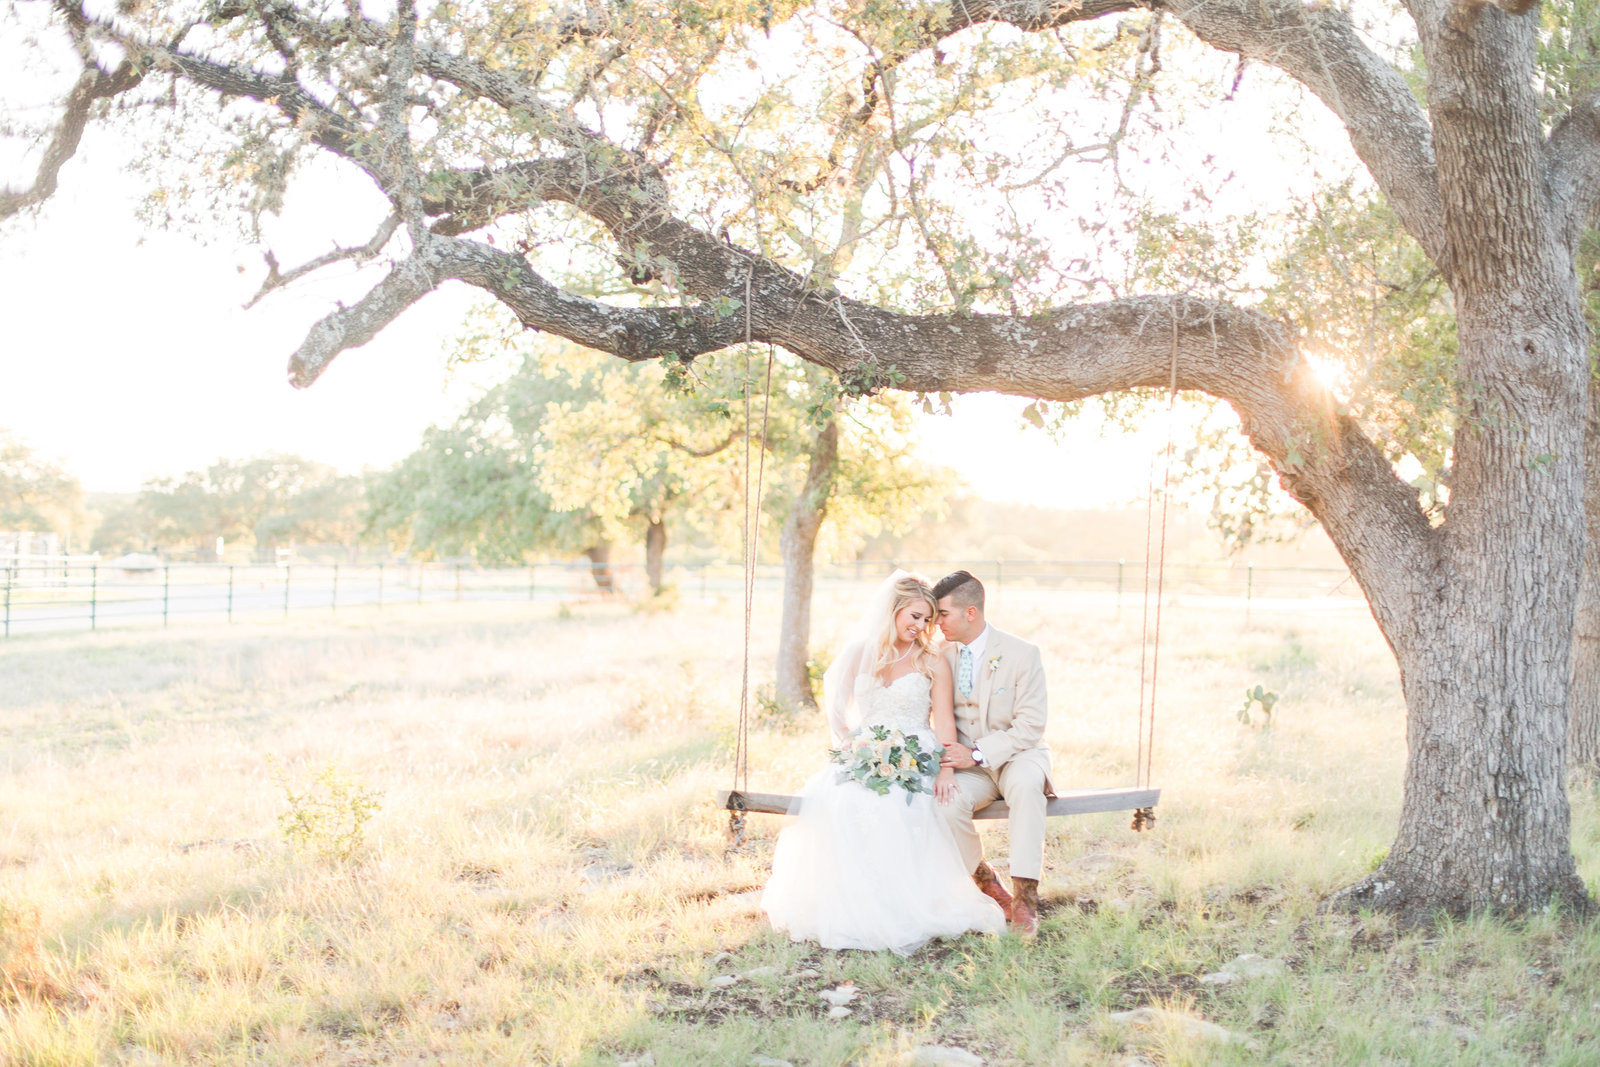 Bride and groom sitting in a tree swing at sunset at CW Hill Country Ranch